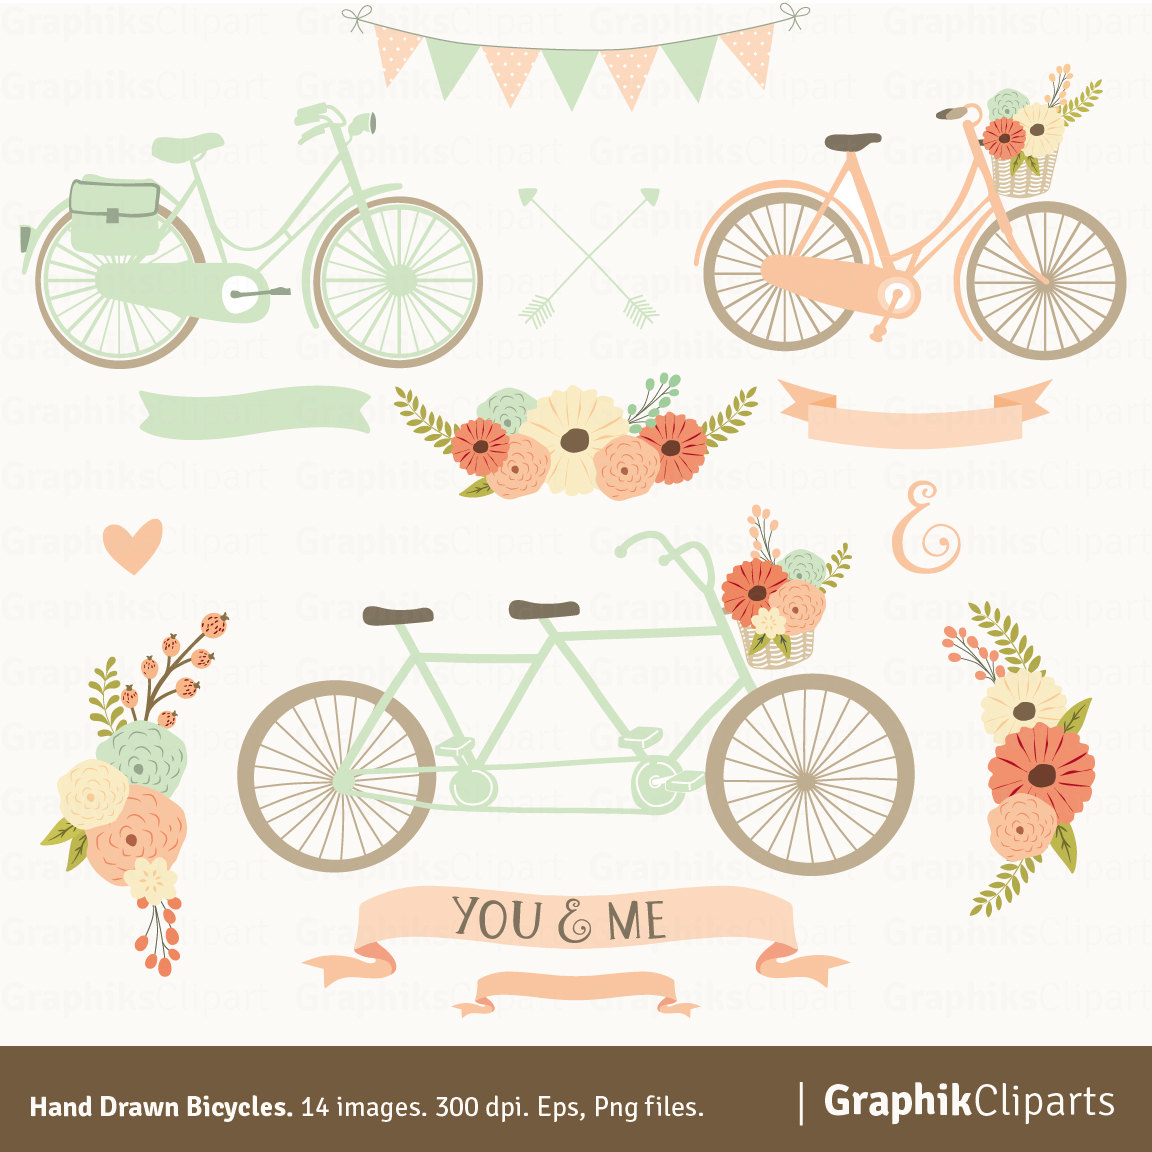 Bike clipart floral. Hand drawn bicycles tandem